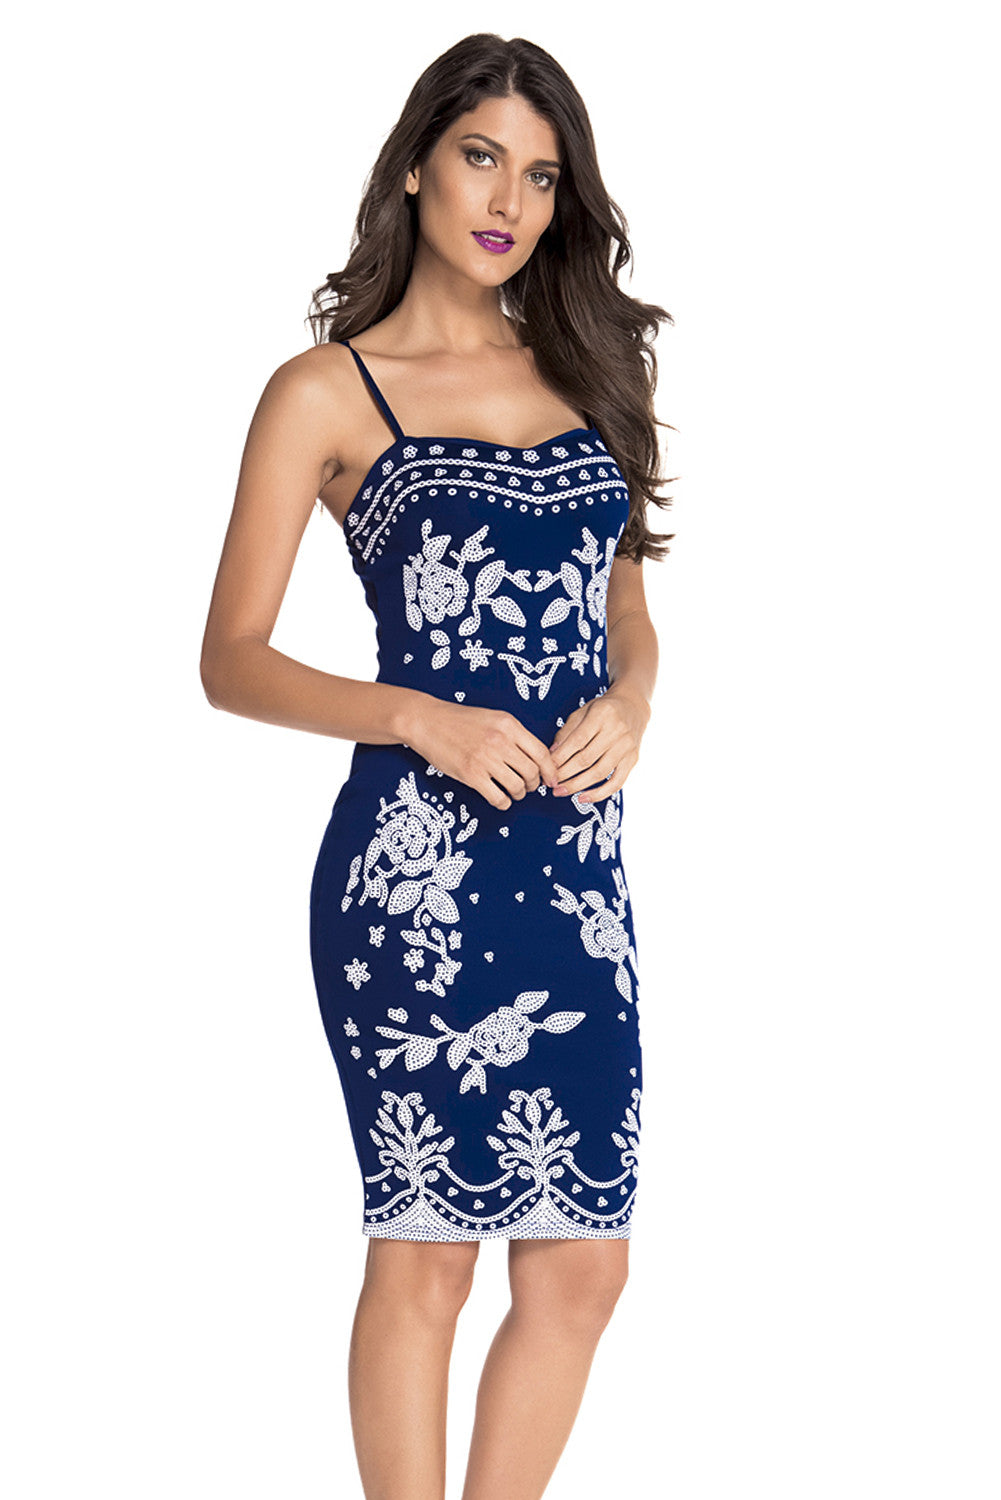 Chic Navy Spaghetti Straps Floral Print Midi Dress